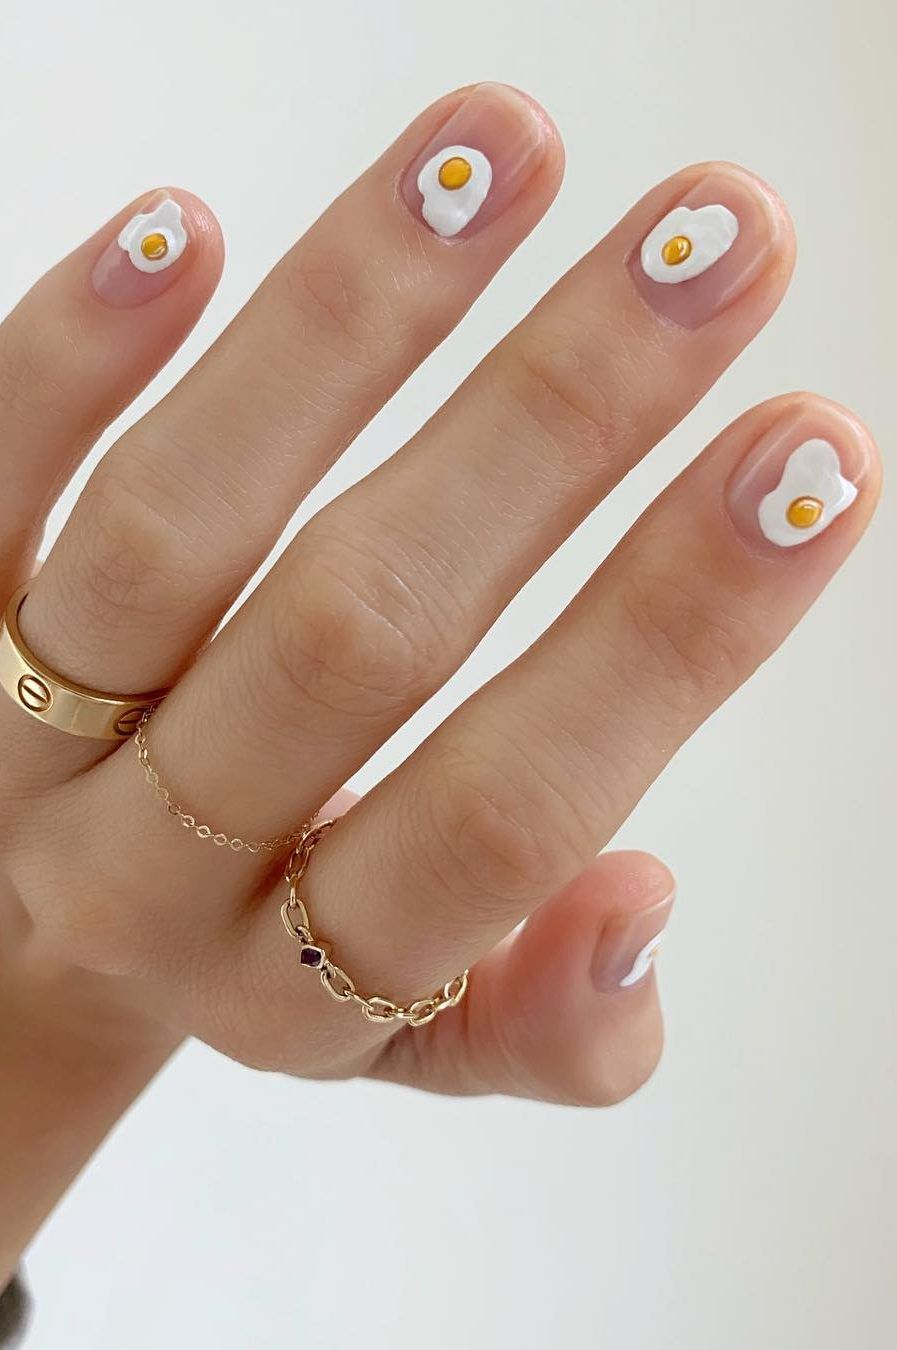 51 Great Spring Nail Art Ideas You Haven T Tried Yet 2020 Page 9 Of 50 Hotcrochet Com In 2020 Minimalist Nails Manicure Winter Nails Acrylic